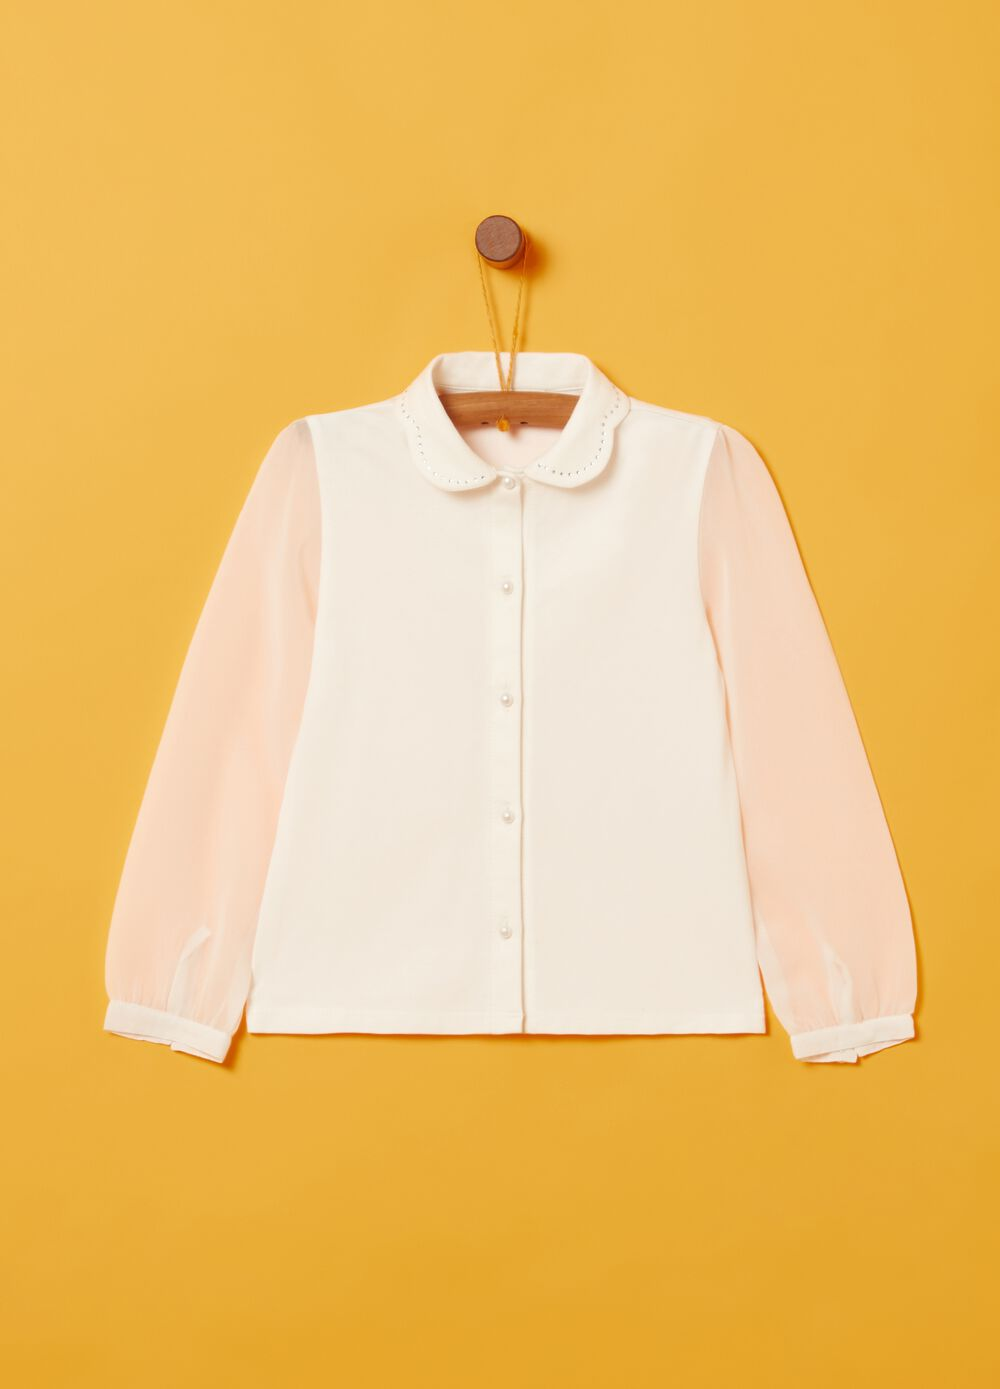 Stretch organic cotton shirt with small studs